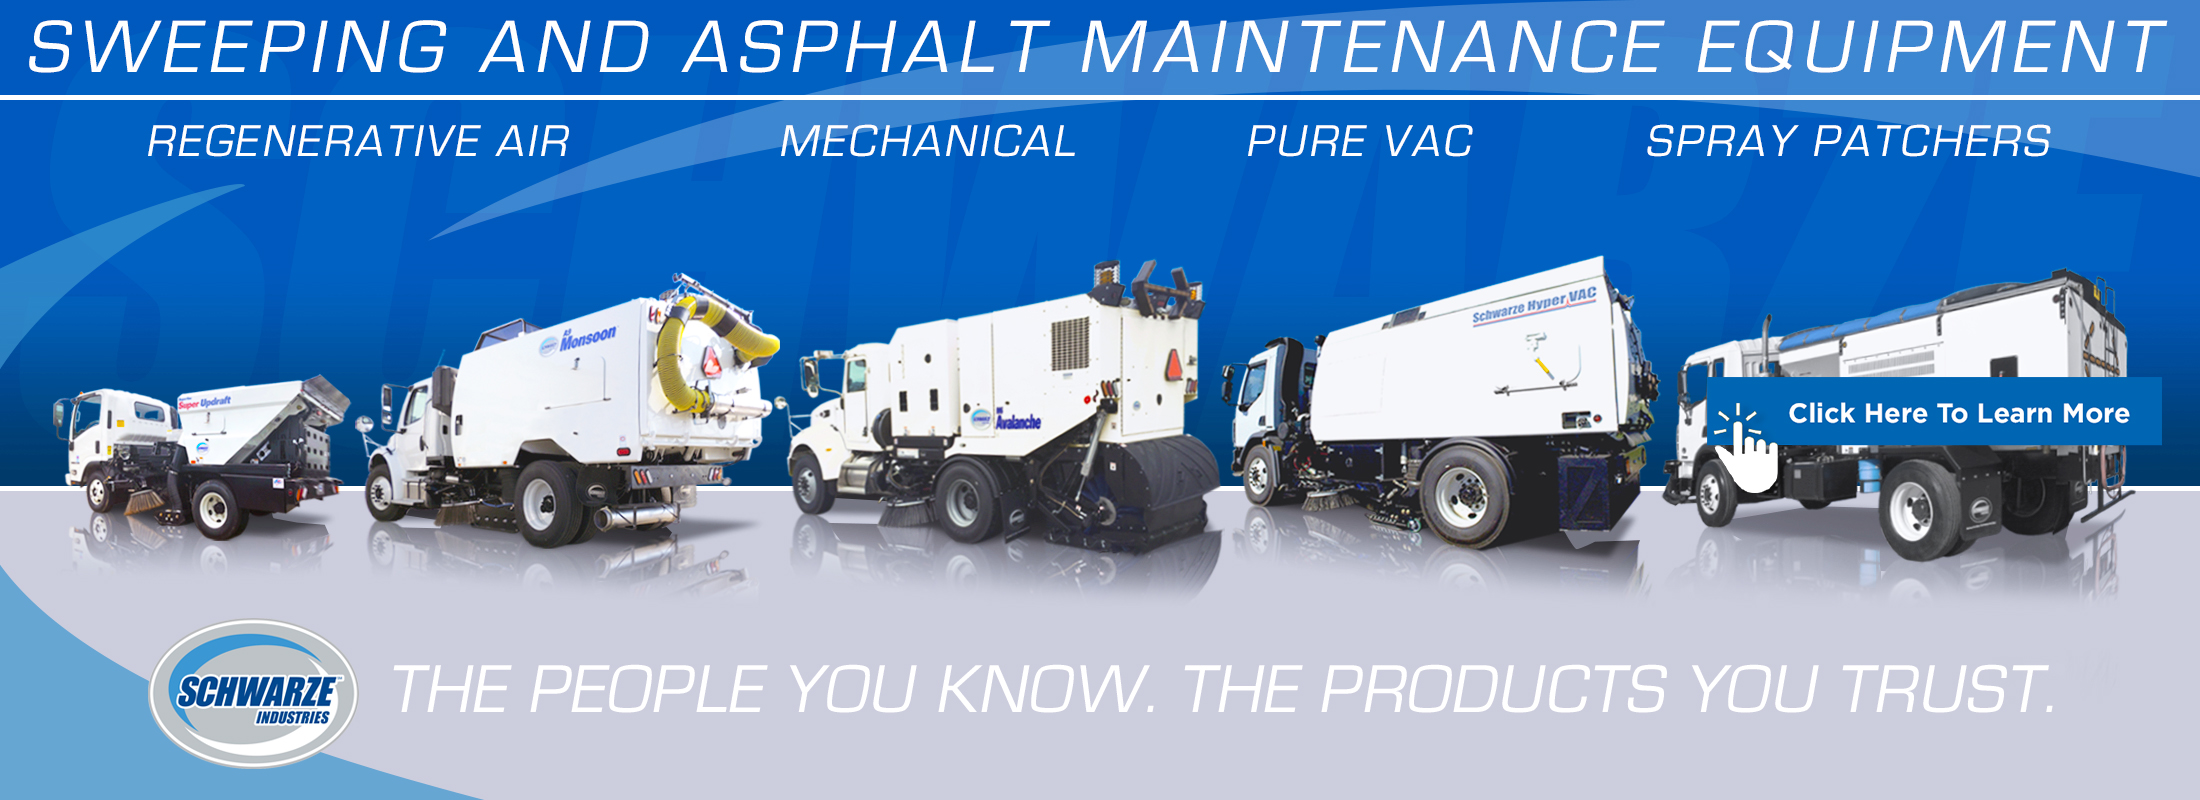 Sweeping and Asphalt Maintenance Equipment